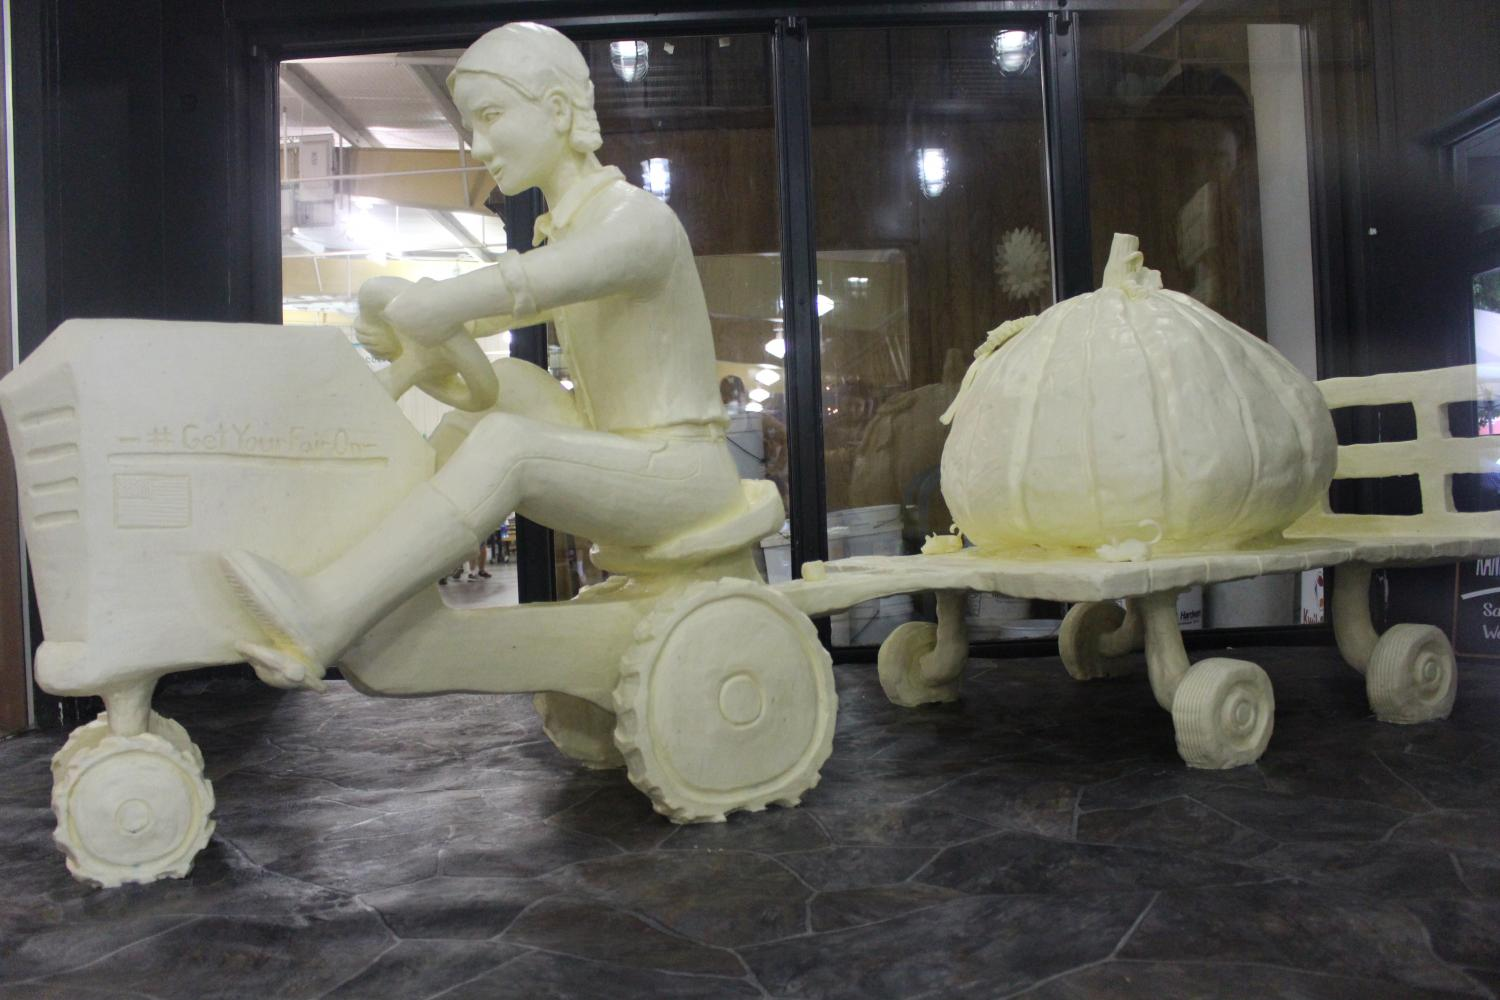 The Kansas State Fair butter sculpture of a girl hauling her first place pumpkin with her tractor. It took up to 1,600 pounds of butter to make this sculpture, and an average of 85 hours took sculpt it.